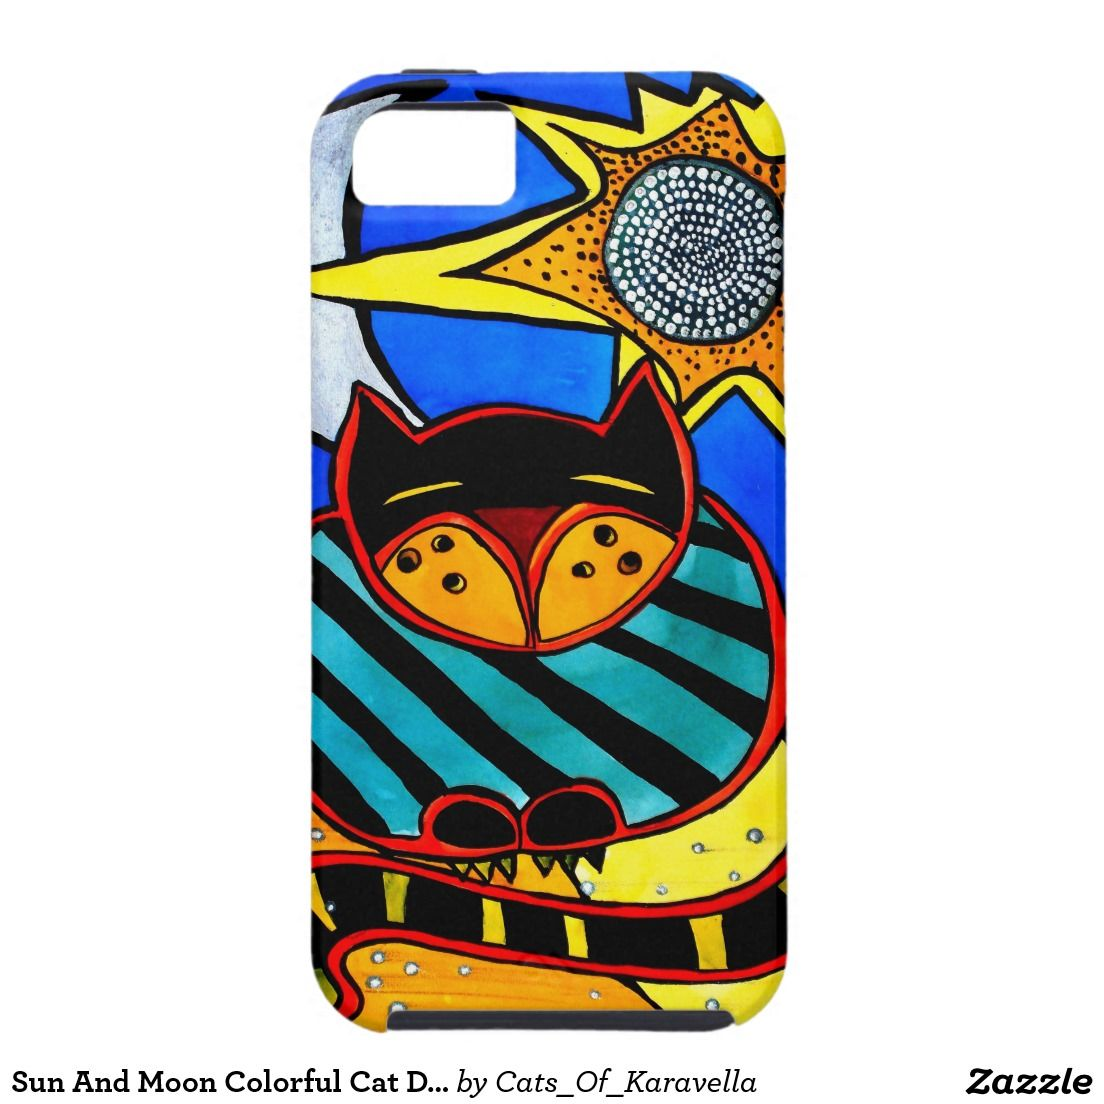 Sun And Moon Colorful Cat Design iPhone SE/5/5s Case. Cat Art by Dora Hathazi Mendes, Cat gifts by Cats Of Karavella. For #catlovers by #dorahathazi